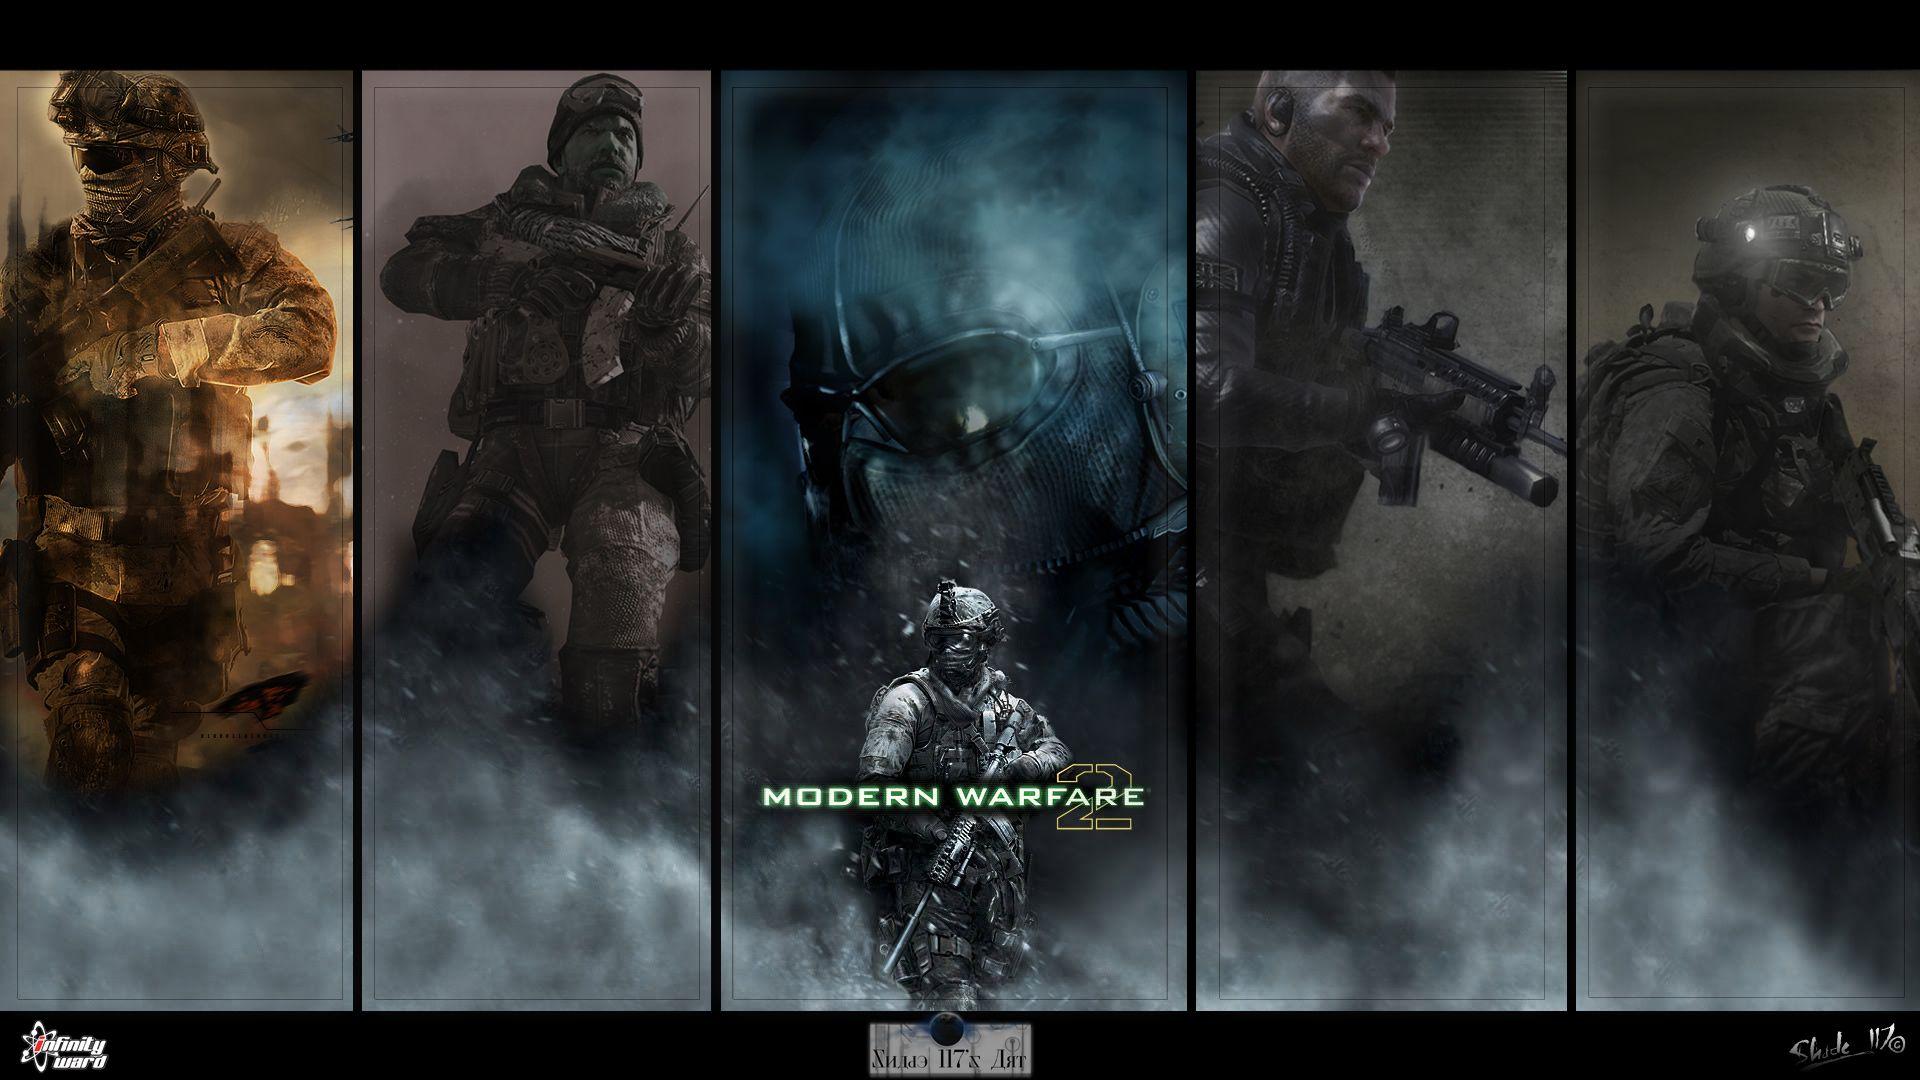 All Great Guys Modern Warfare Call Of Duty Advanced Warfare